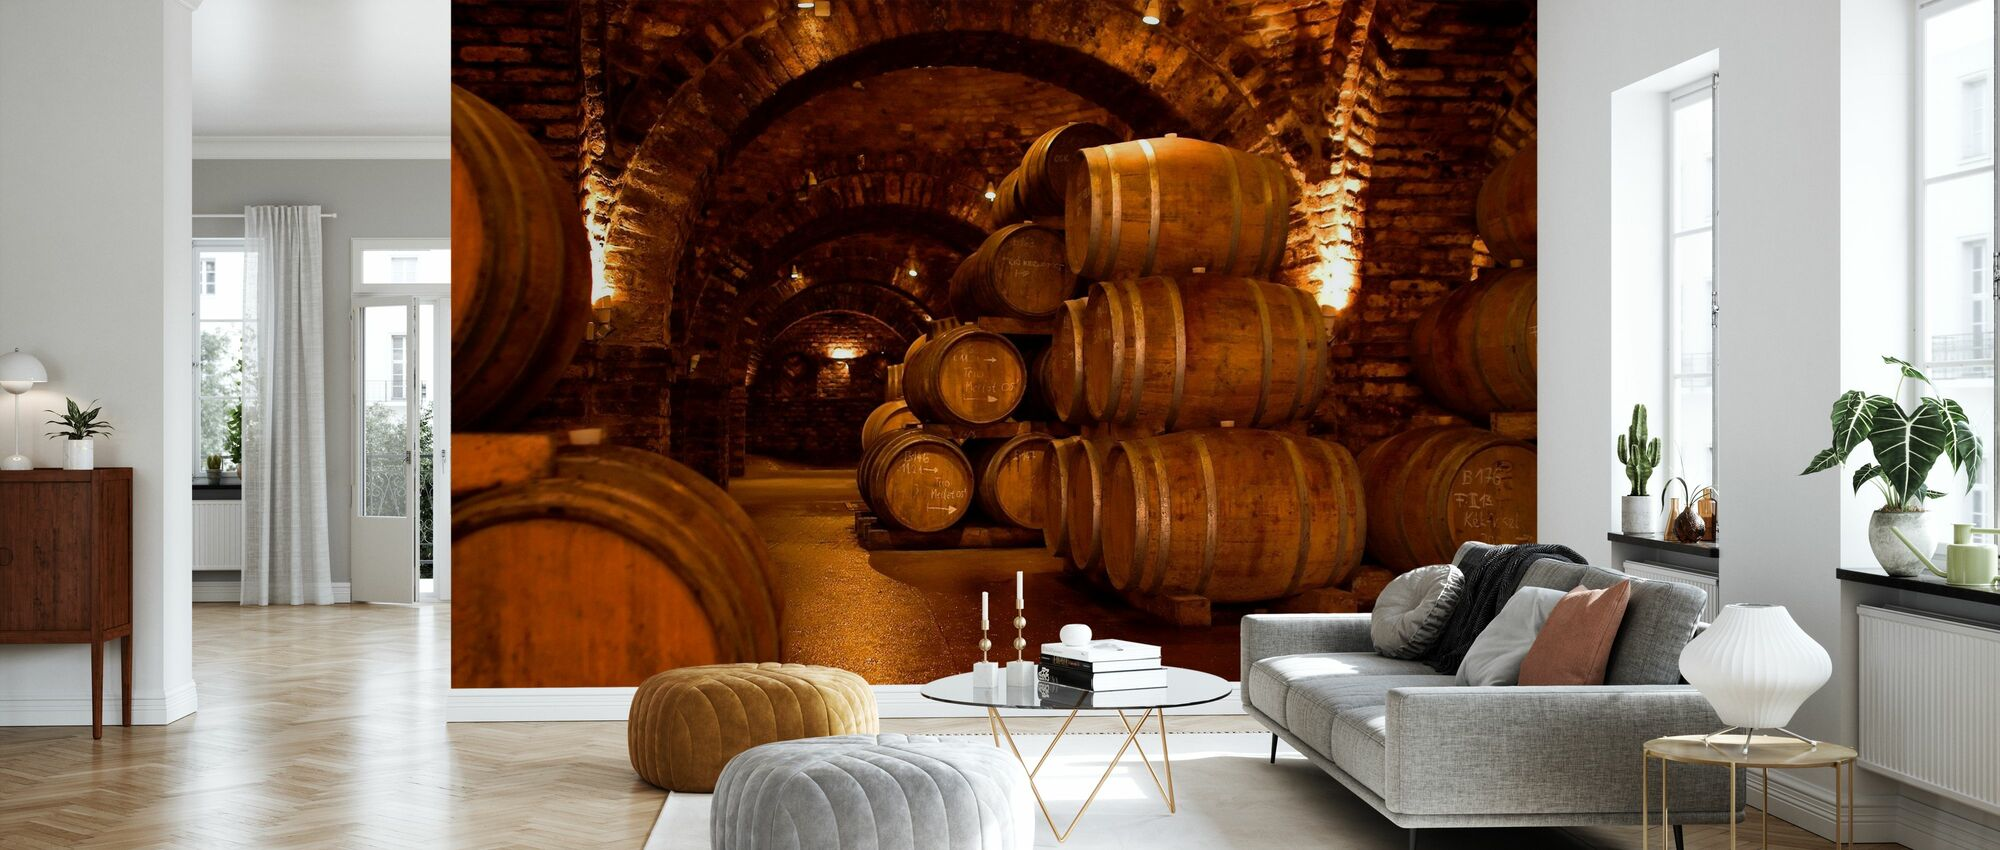 Wine Cellar Barrels - Wallpaper - Living Room